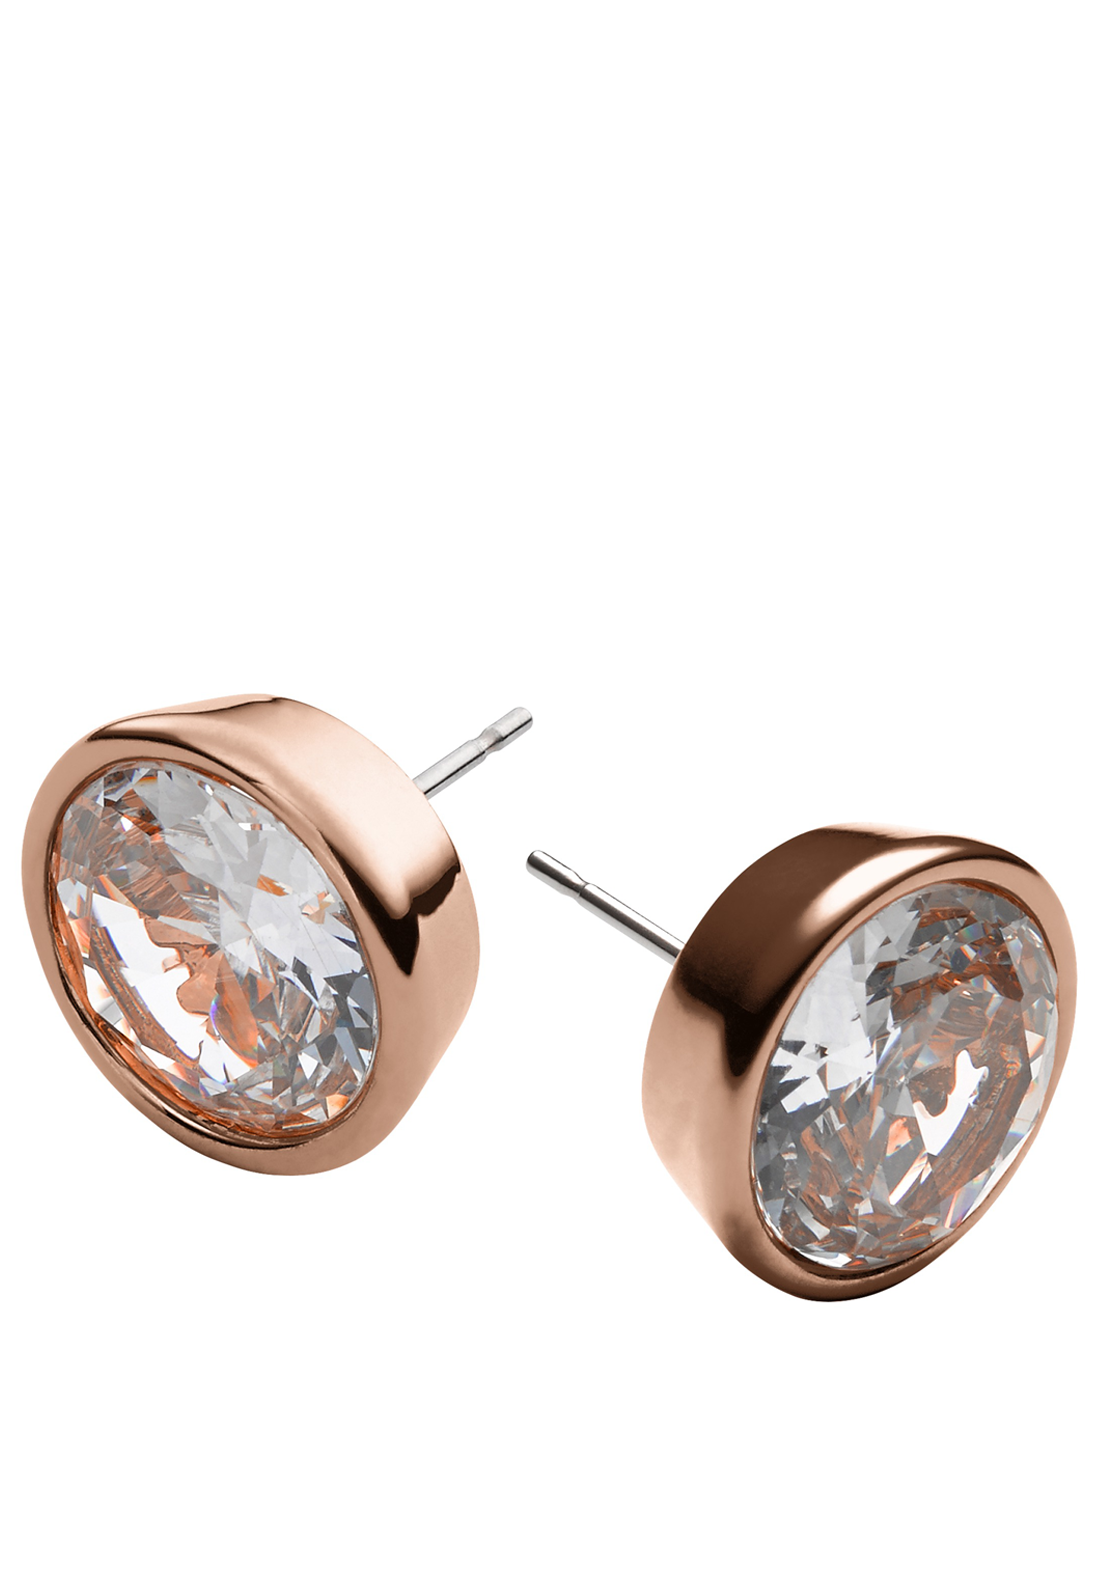 Michael Kors Womens Crystal Stud Earrings, Rose Gold